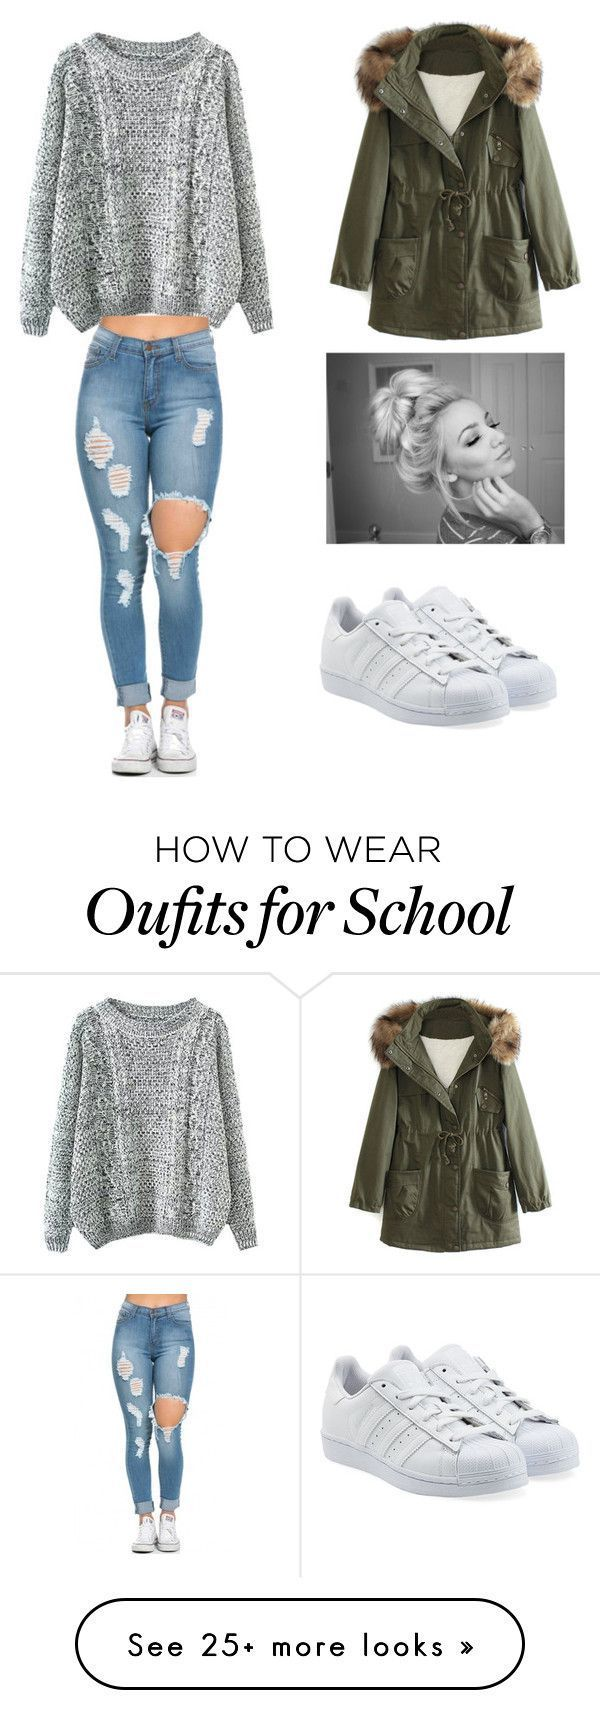 School outfit✏ by moderngirl2000 on Polyvore featuring adidas Originals, WithChic, womens clothing, women, female, woman, misses and juniors